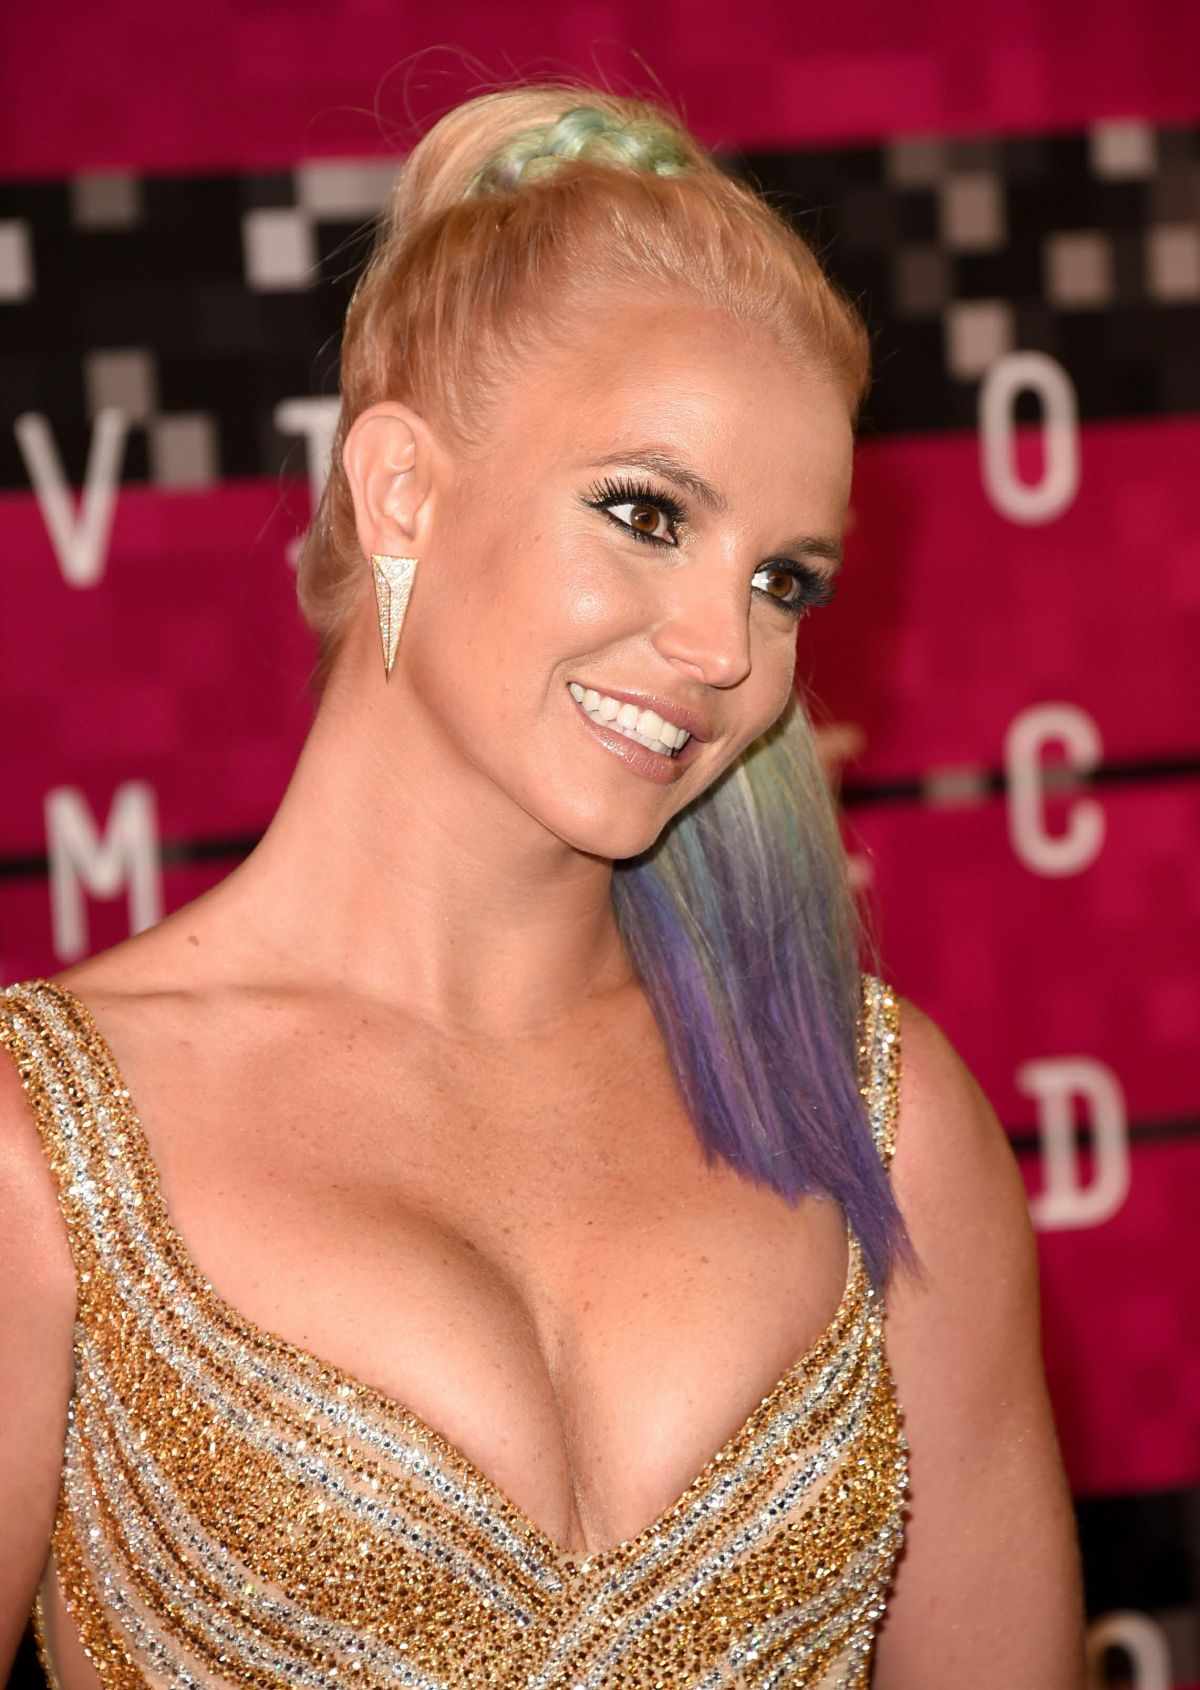 THE Britney spears shows boob